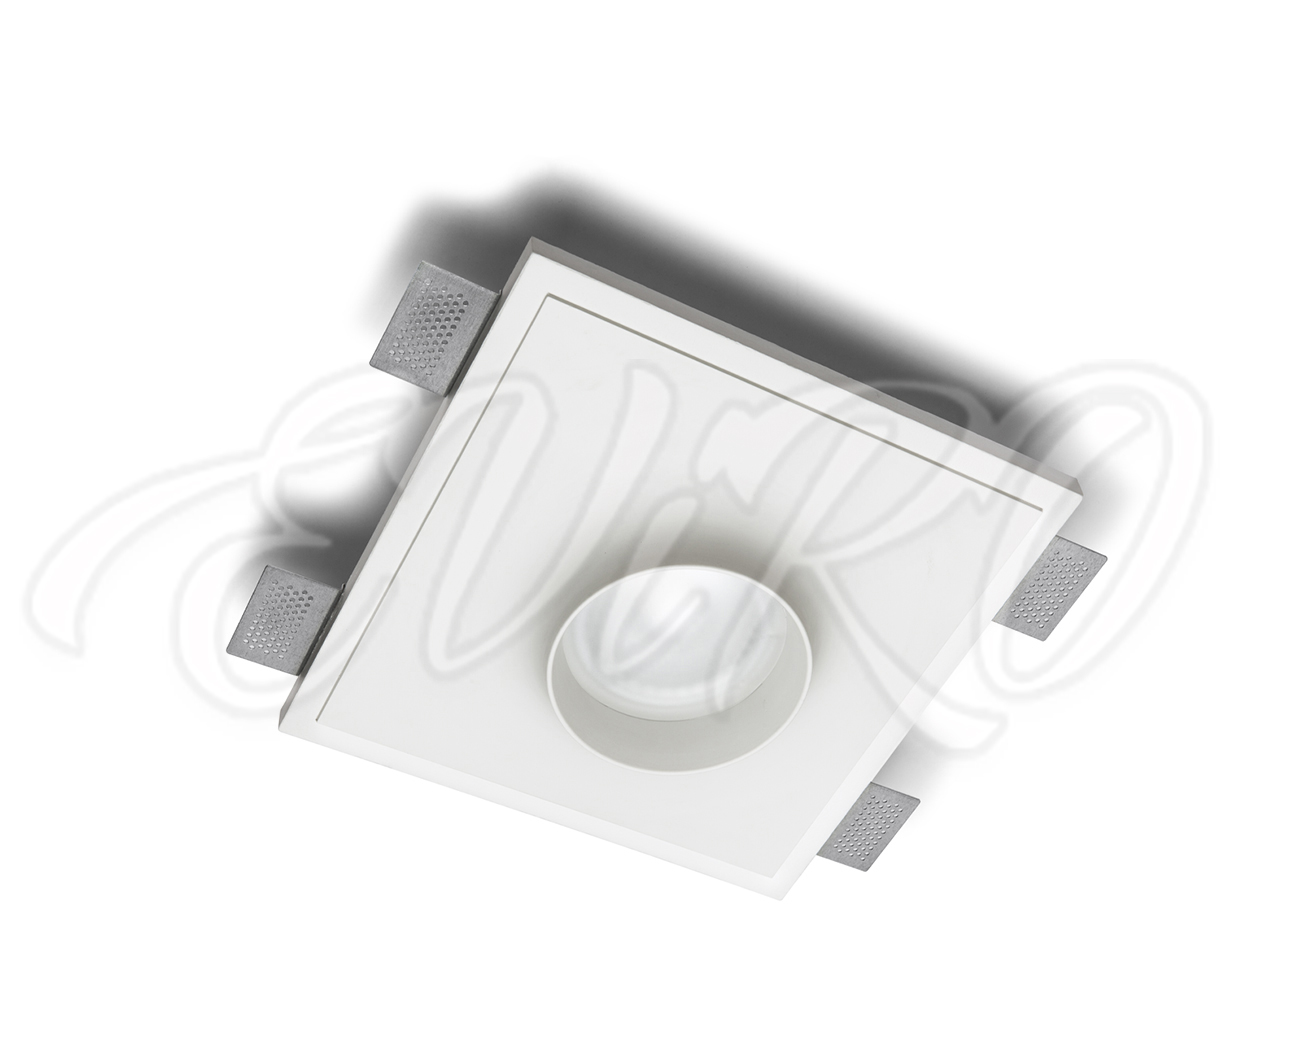 Built-in ceiling lighting fixture EViRO VPS 56